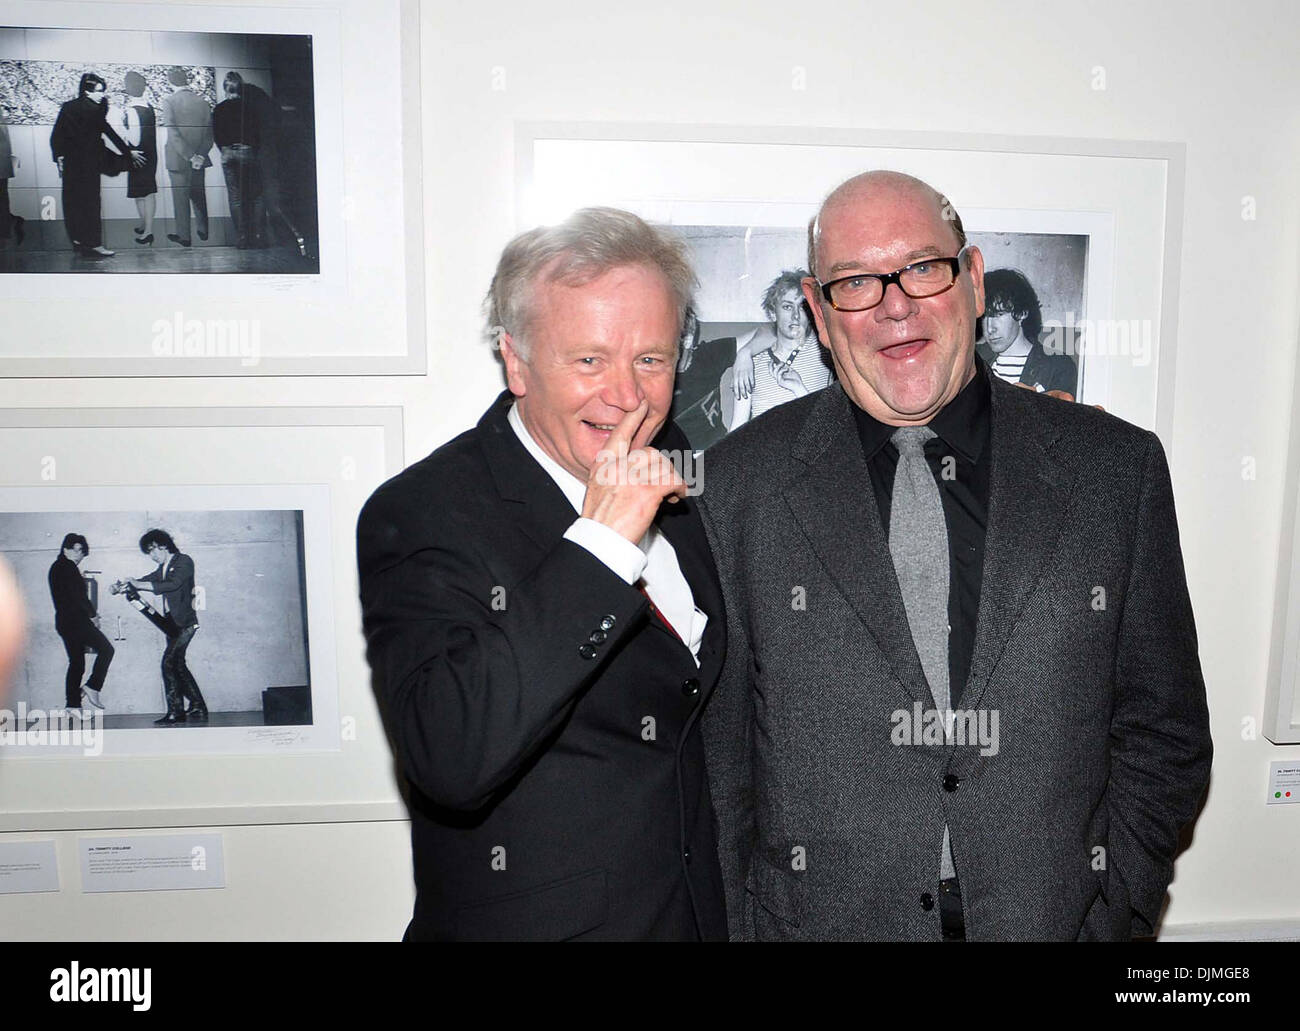 Patrick Brocklebank and U2 manager Paul McGuinness U2 Manager Paul McGuinness officially opened photography exhibition Stock Photo